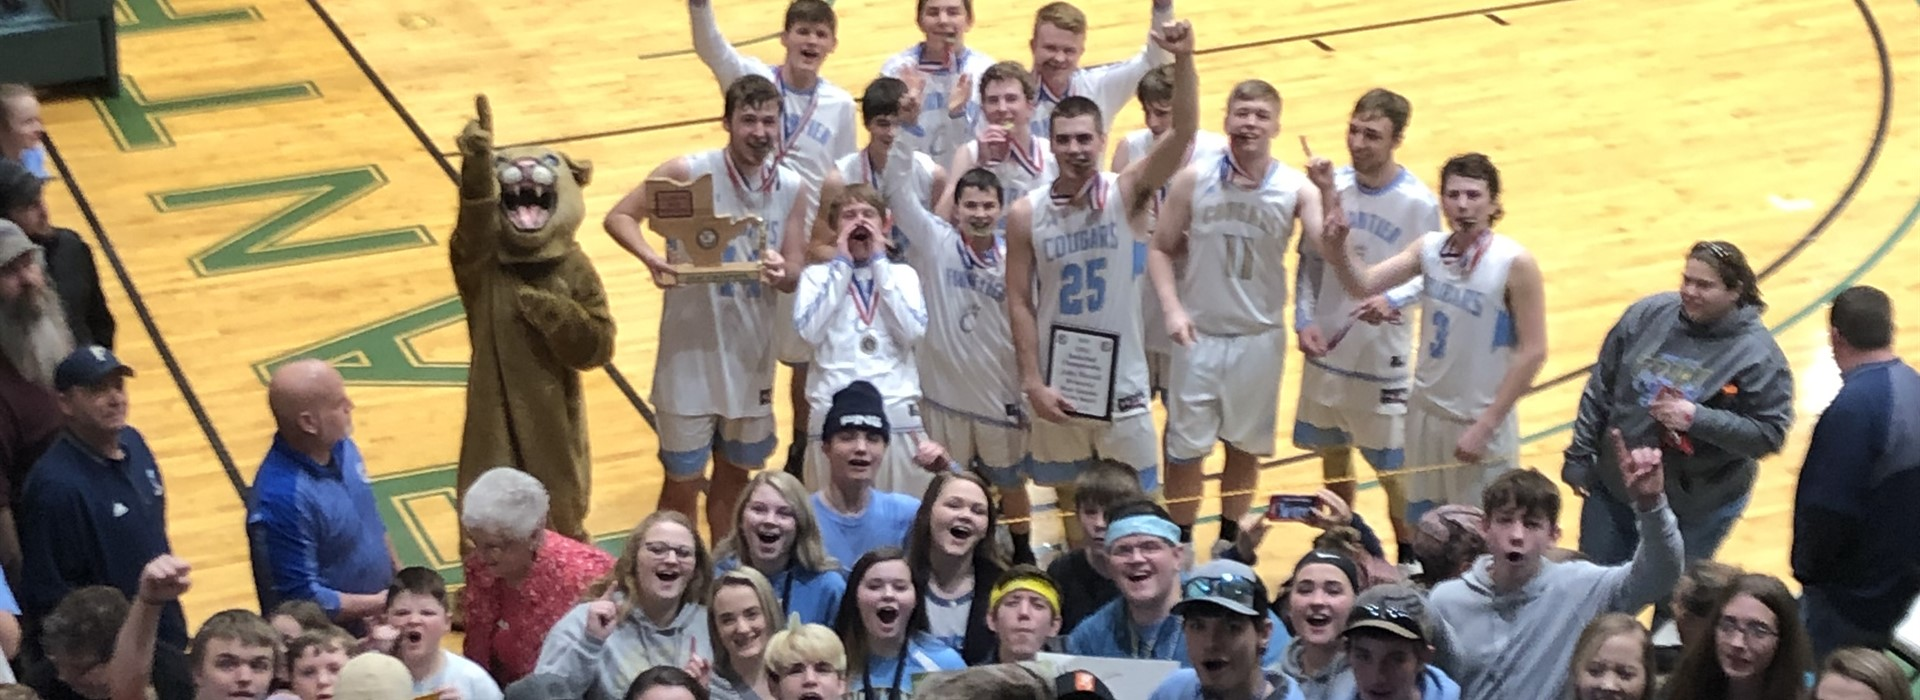 Champions with a Champion Student Section